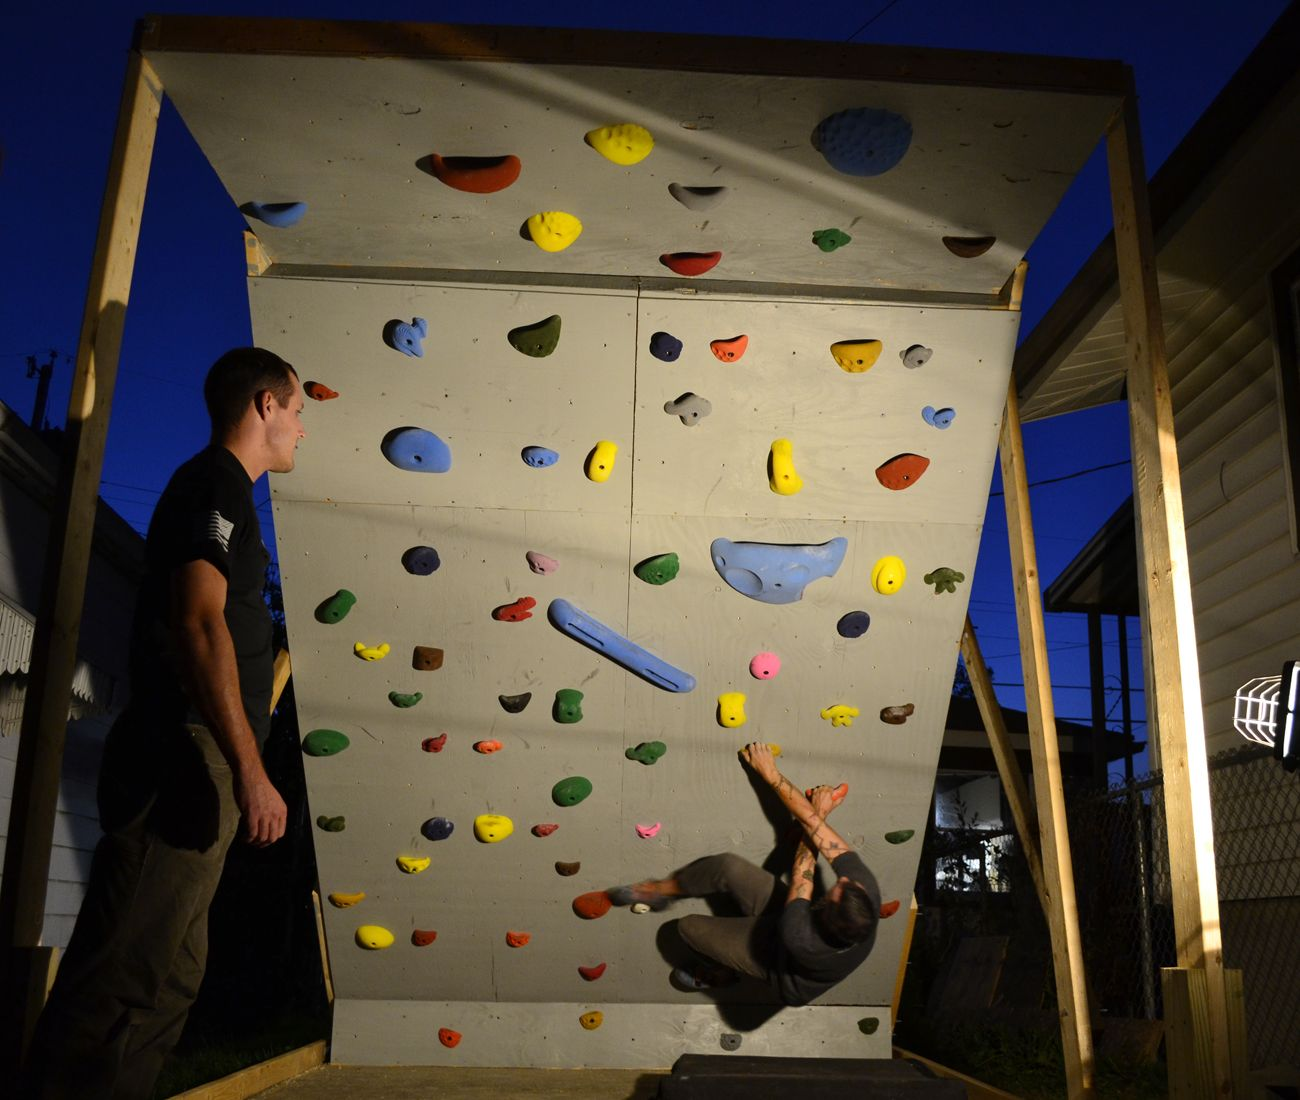 Building a bouldering wall our life outside bouldering pinterest kletterwand klettern - Kletterwand zu hause ...